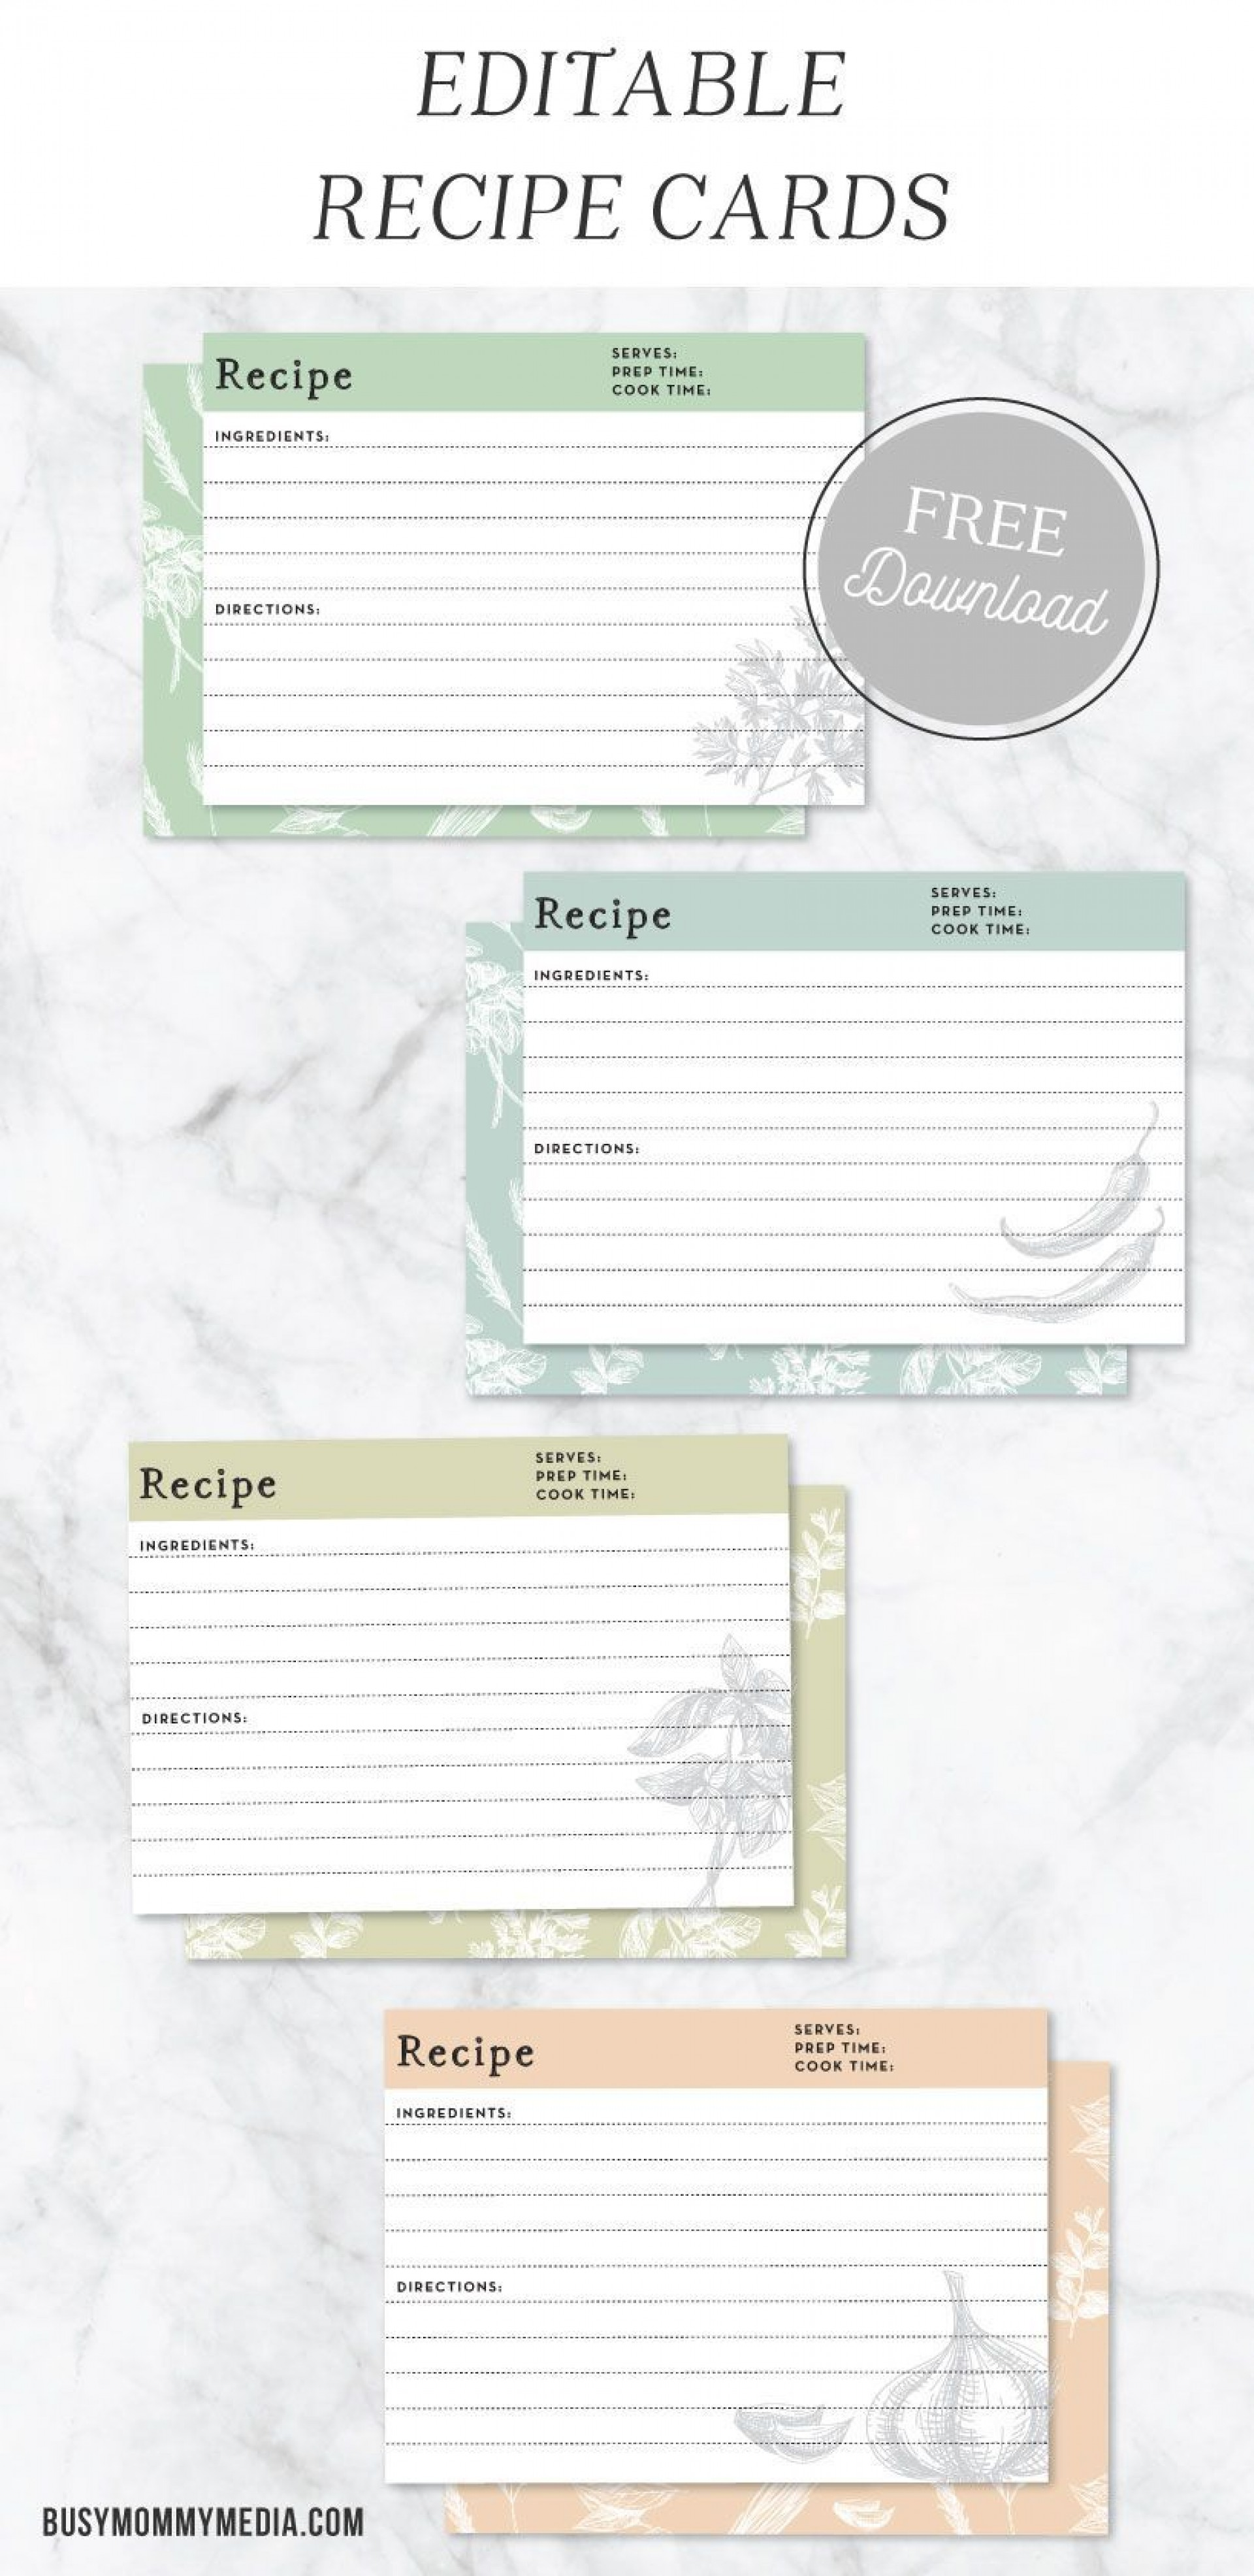 006 Imposing Editable Recipe Card Template Concept  Free For Microsoft Word 4x6 Page1920